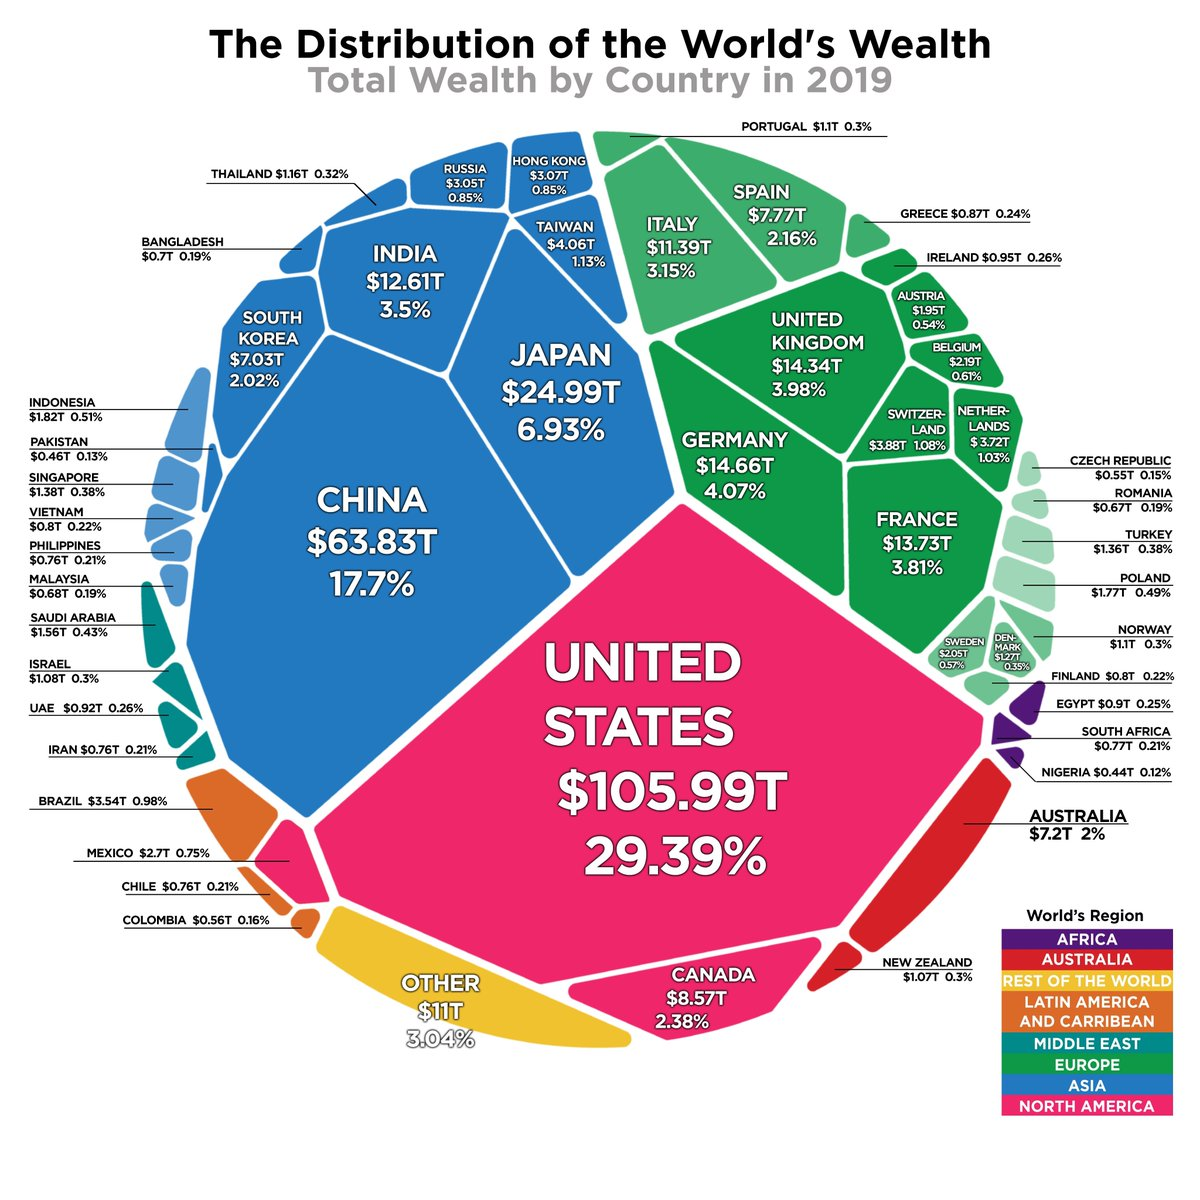 Top 10 Countries with the Most Wealth in the World 1. United States: $105.99T 2. China: $63.83T 3. Japan: $24.99T 4. Germany: $14.66T 5. United Kingdom: $14.34T 6. France: $13.73T 7. India: $12.61T 8. Italy: $11.36T 9. Canada: $8.57T 10. Spain: $7.77T <br>http://pic.twitter.com/efTZEXWy4E